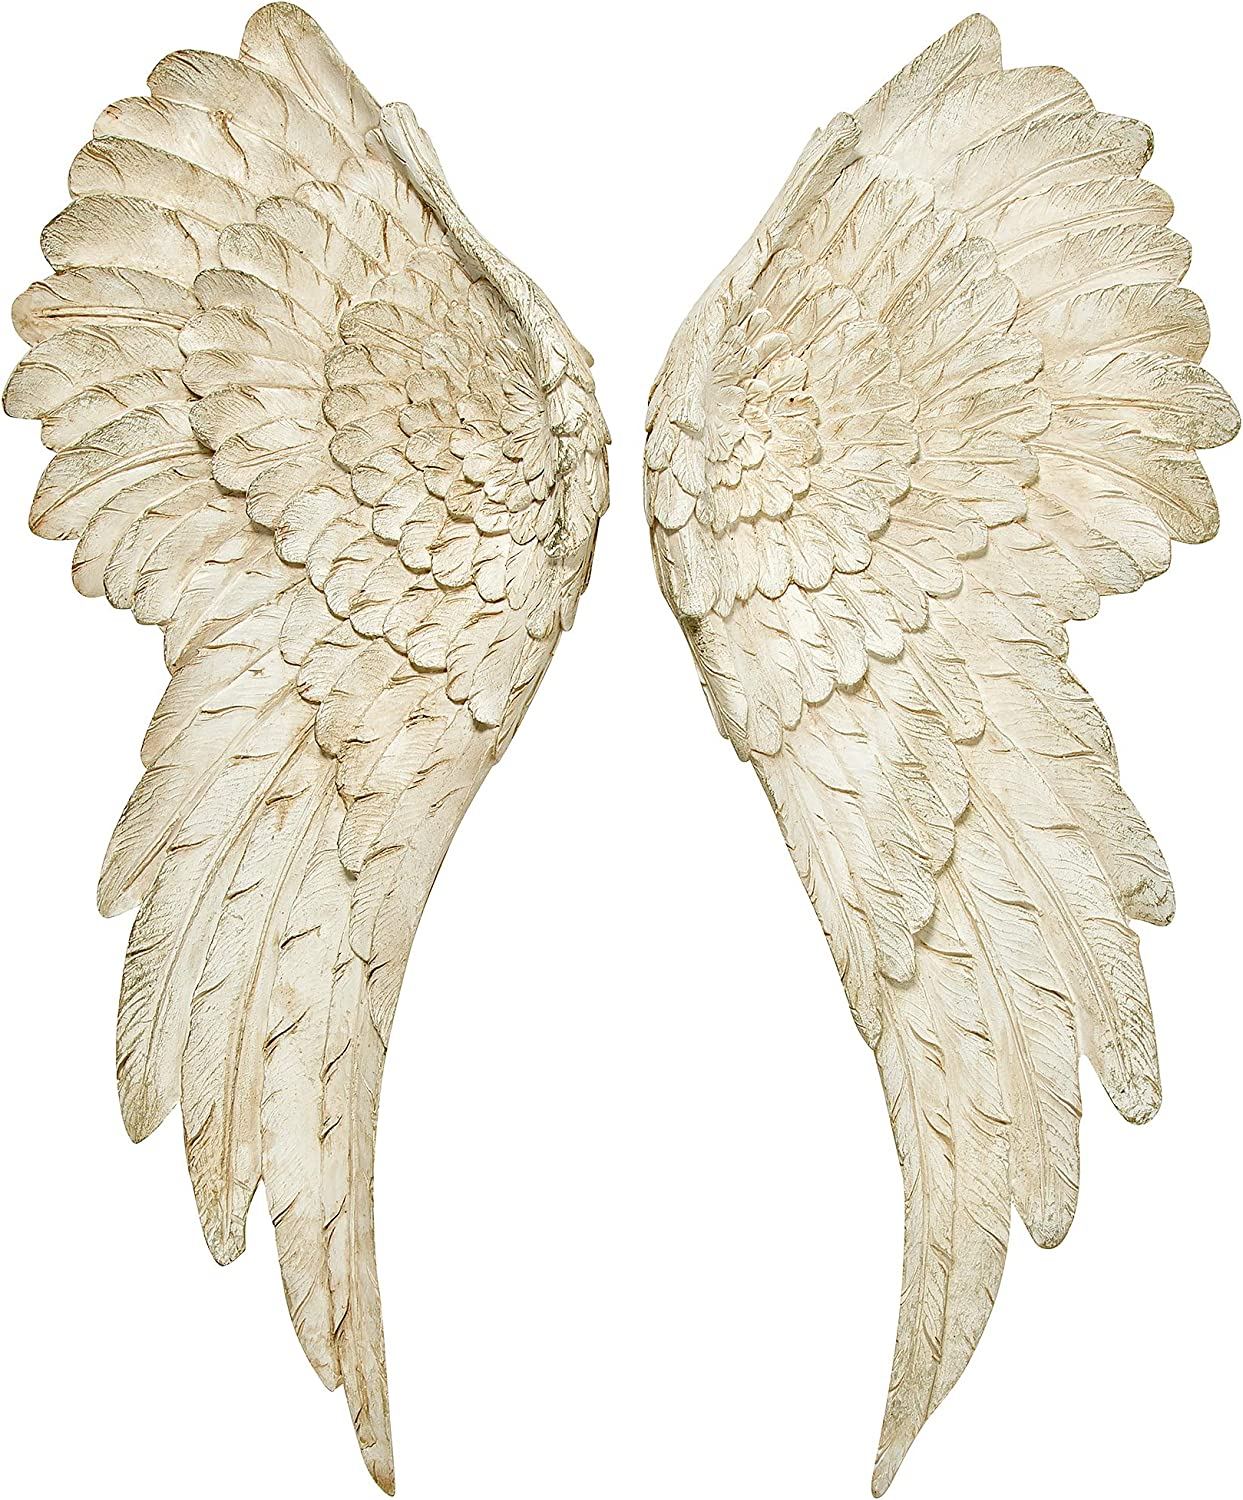 WHW Whole House Worlds Grand Tour Angel Wings, Vintage Style, Set of 2, Antique White, Artisinal Design, Hand Crafted, Bas Relief Sculptures, 21.75 Inches Tall